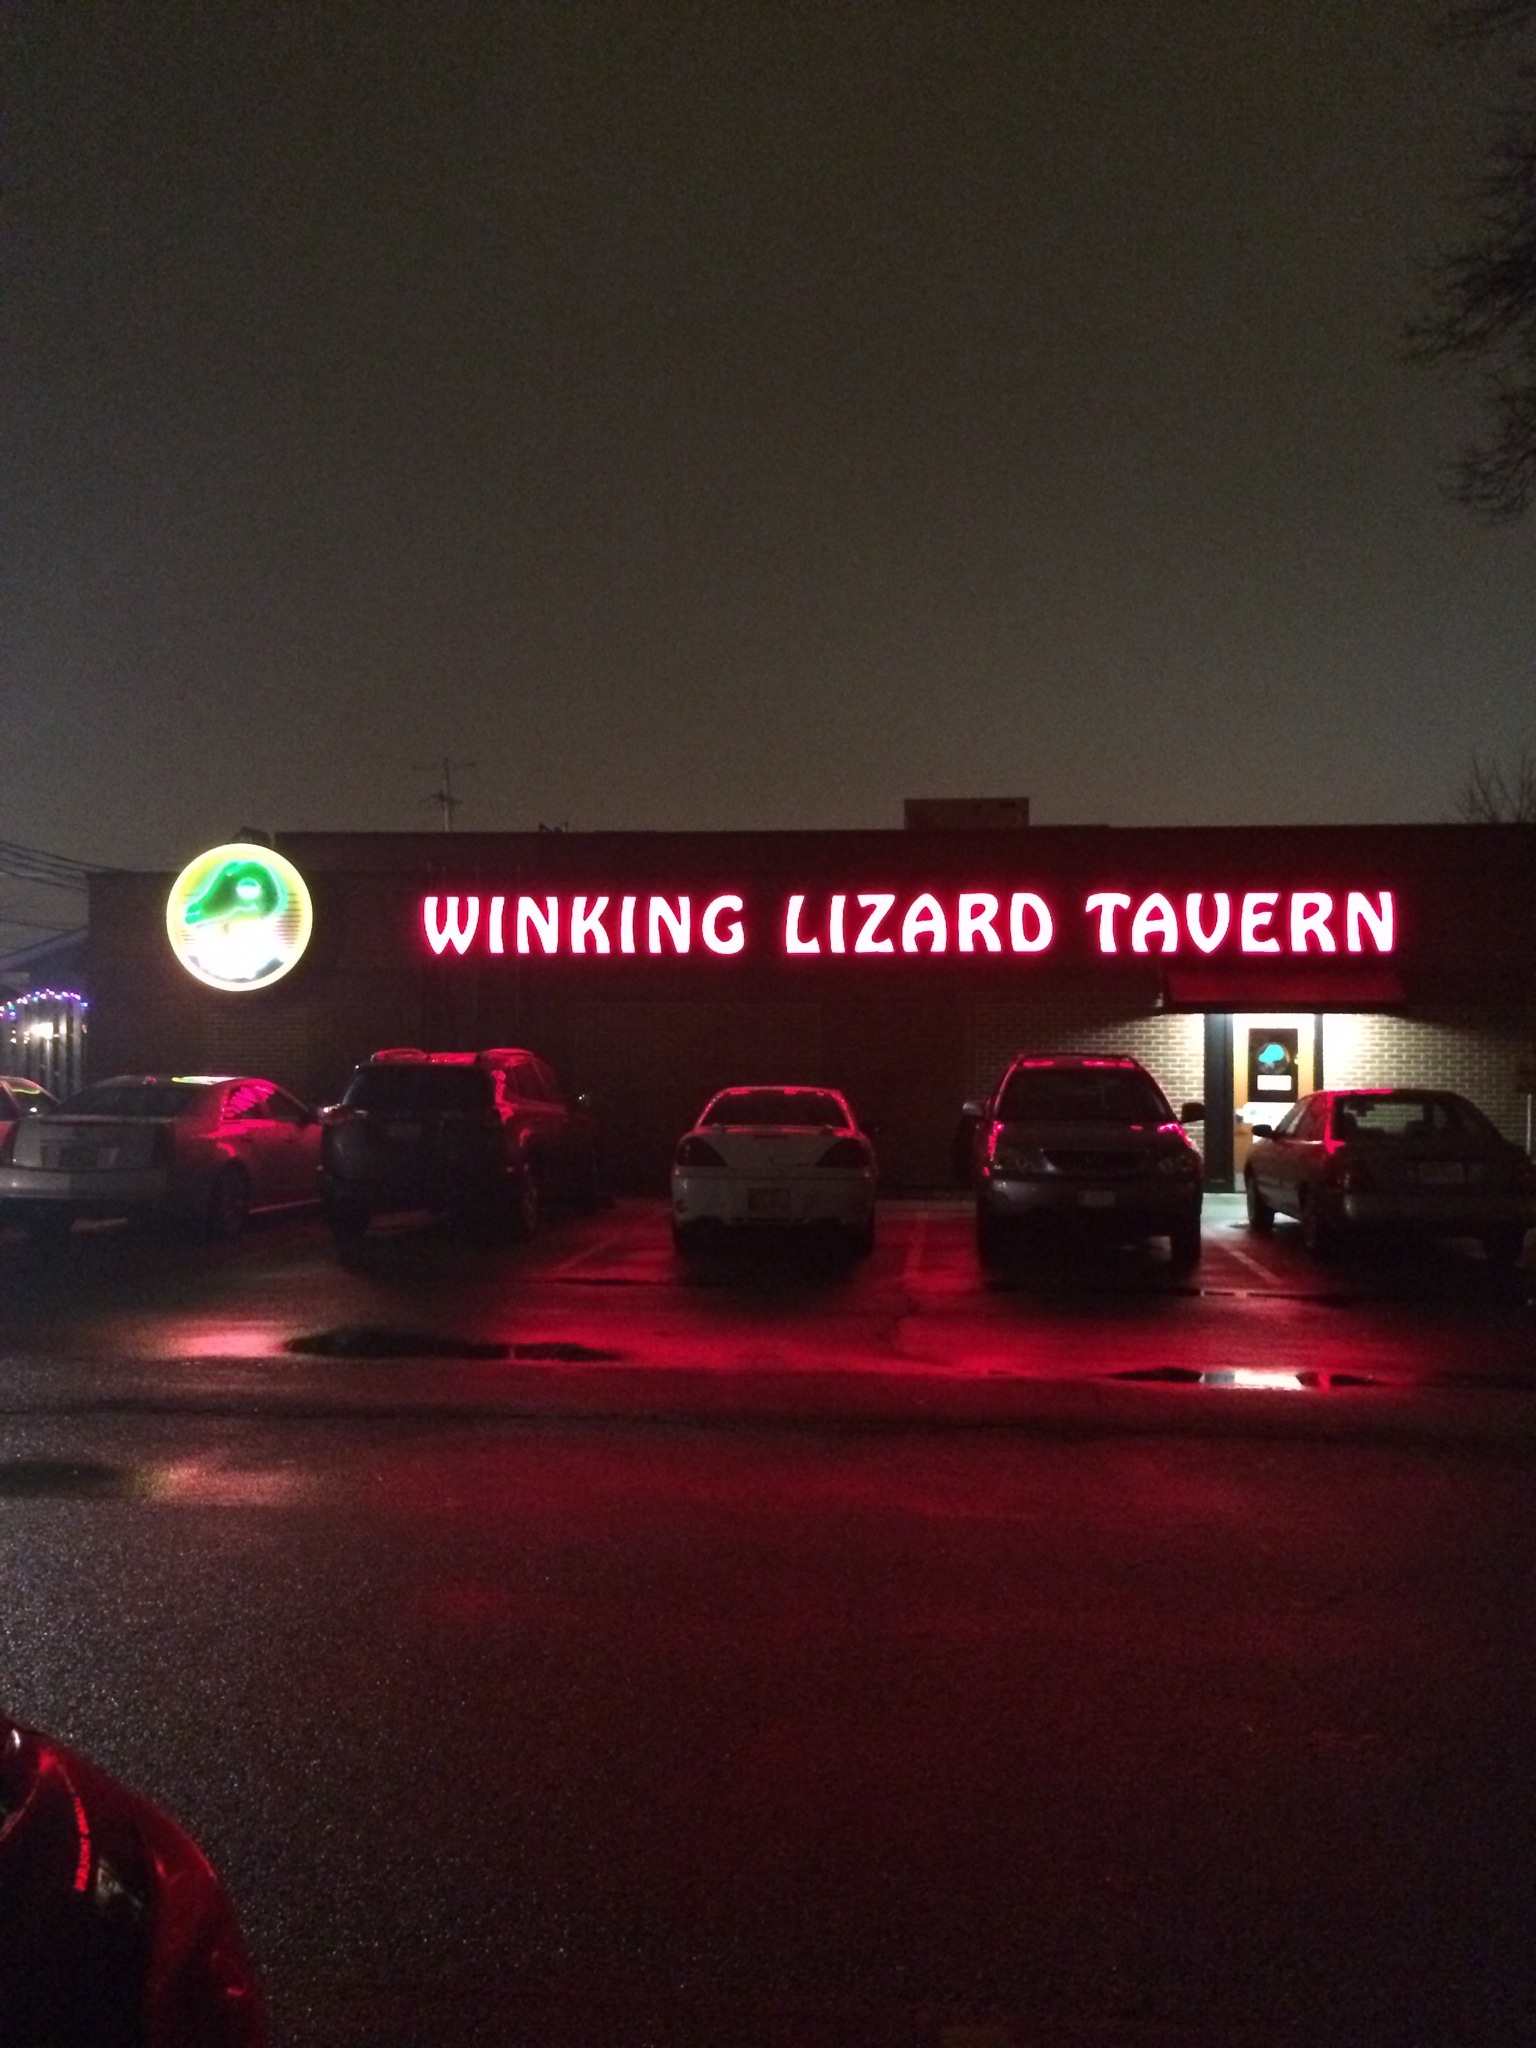 Winking Lizard Tavern – Let The Good Times Roll